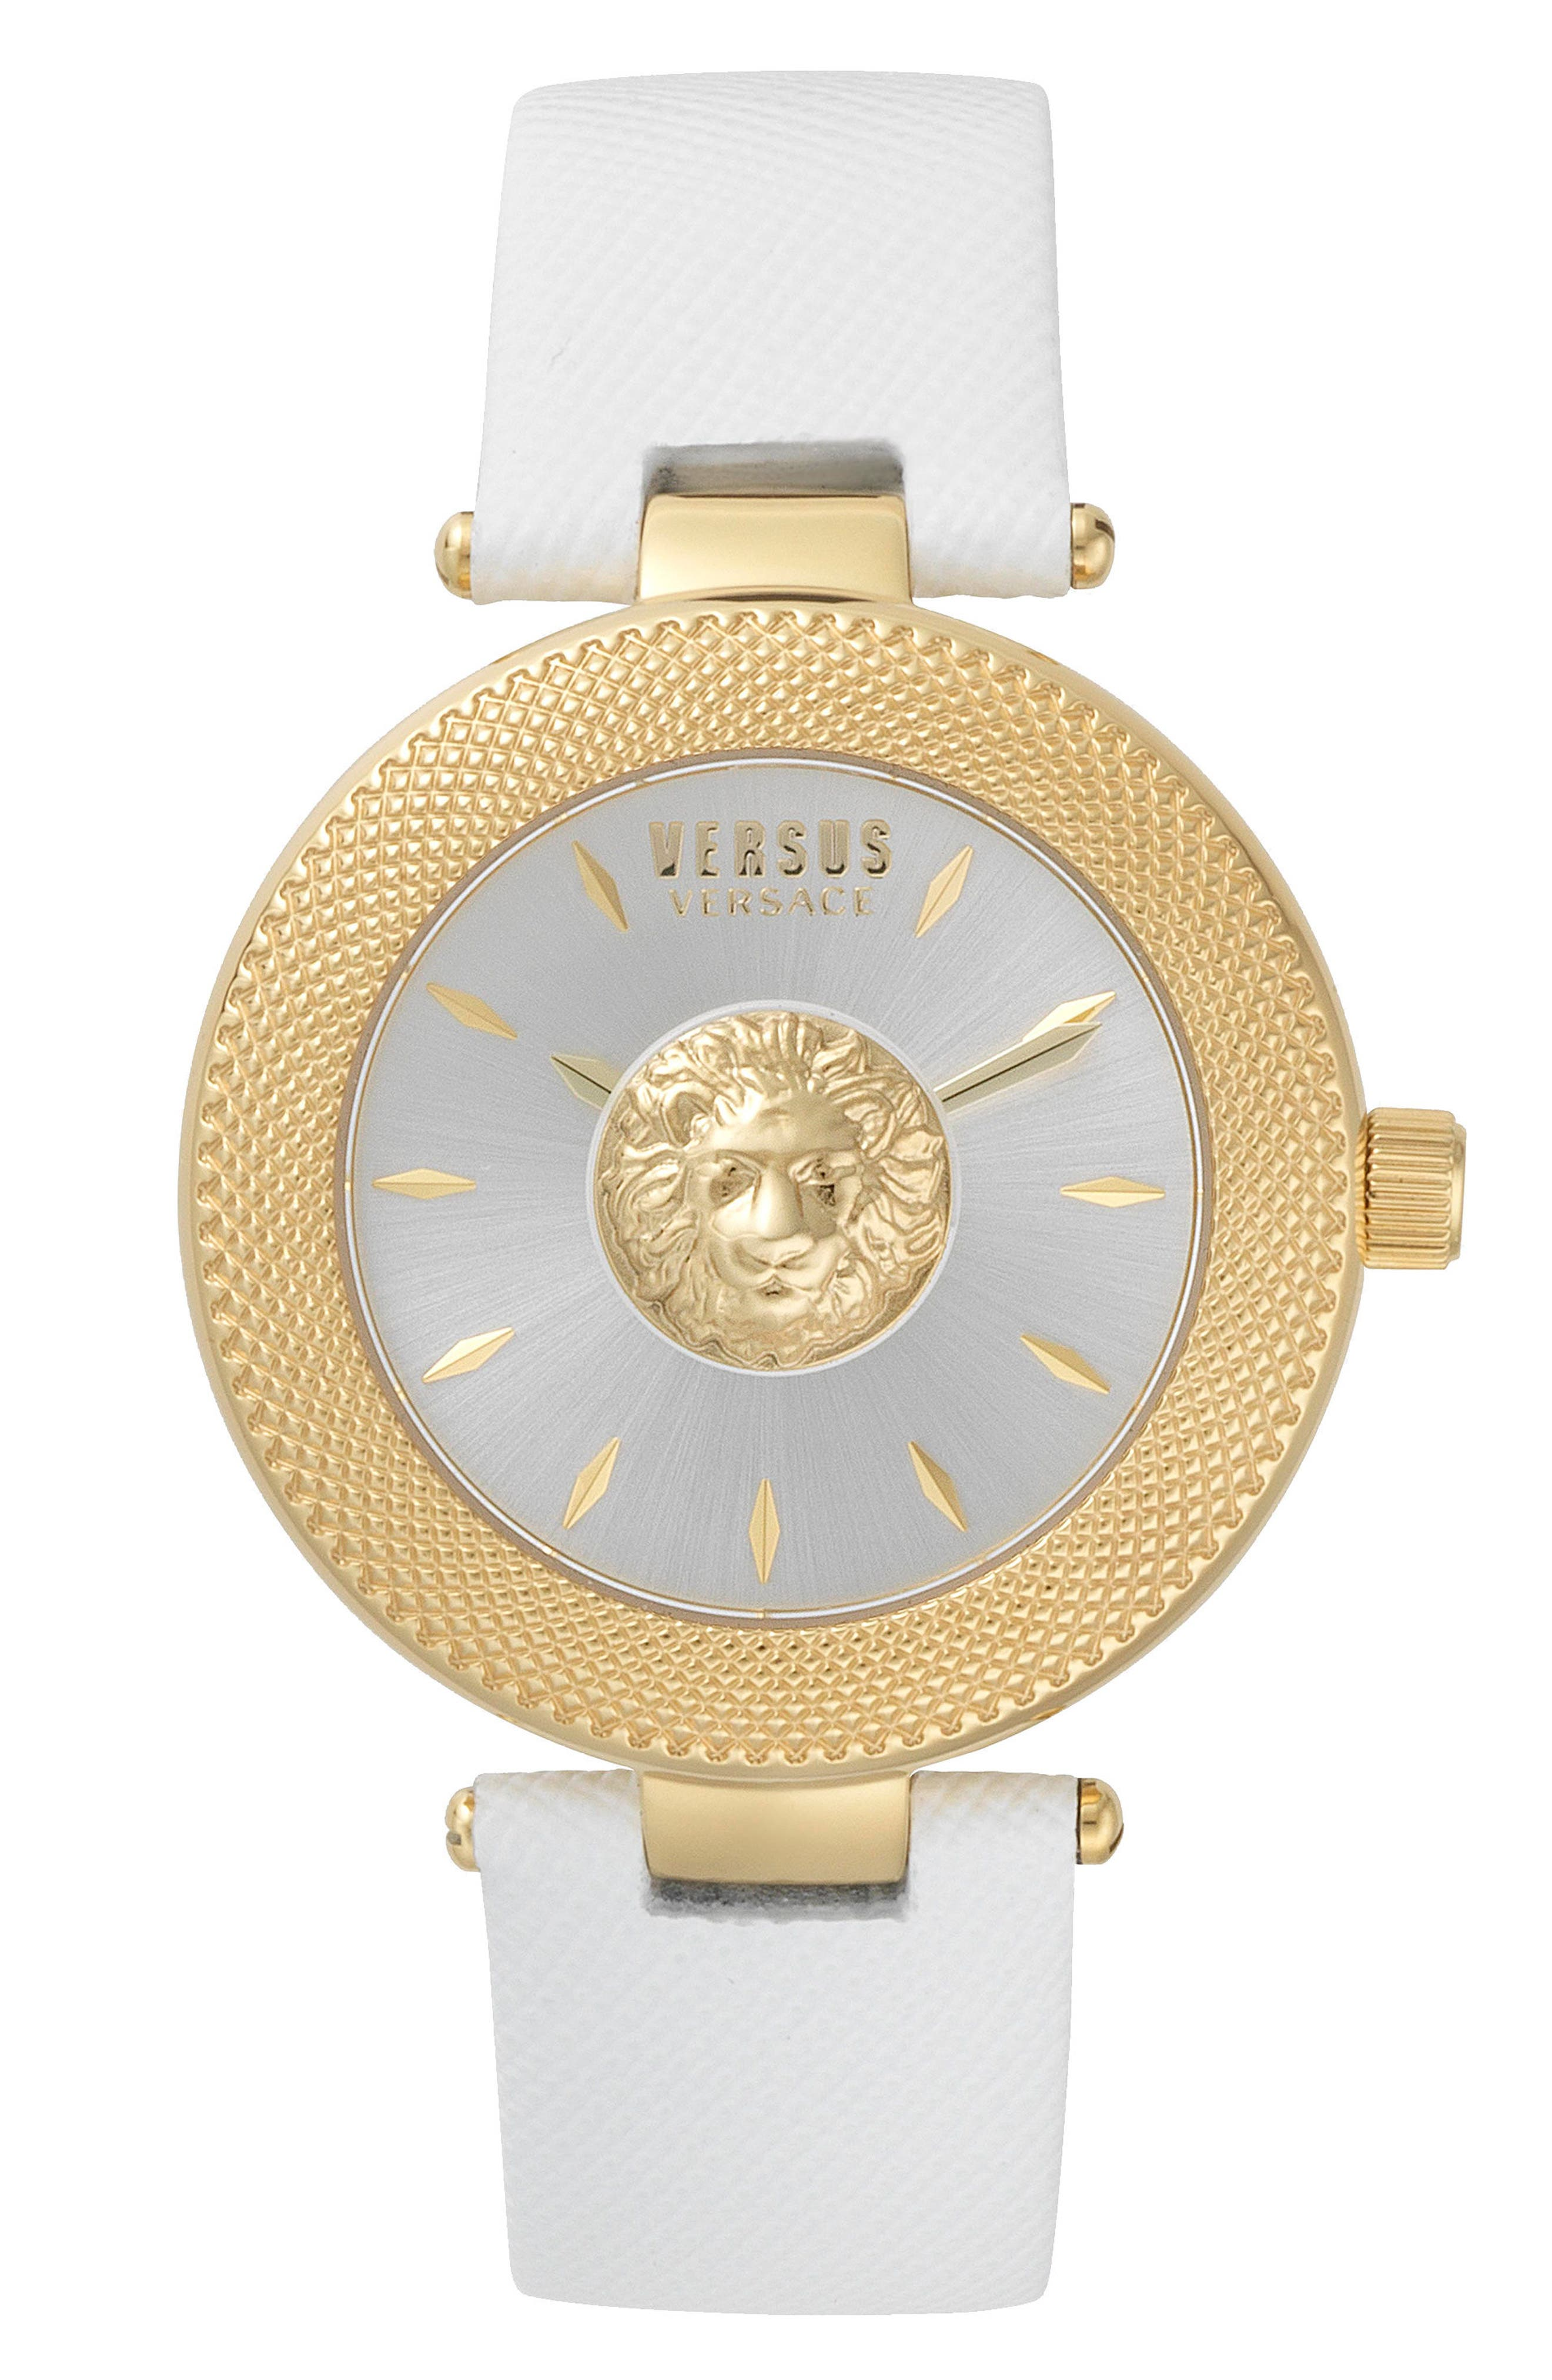 VERSUS by Versace Brick Lane Leather Strap Watch, 40mm,                         Main,                         color, White/ Gold